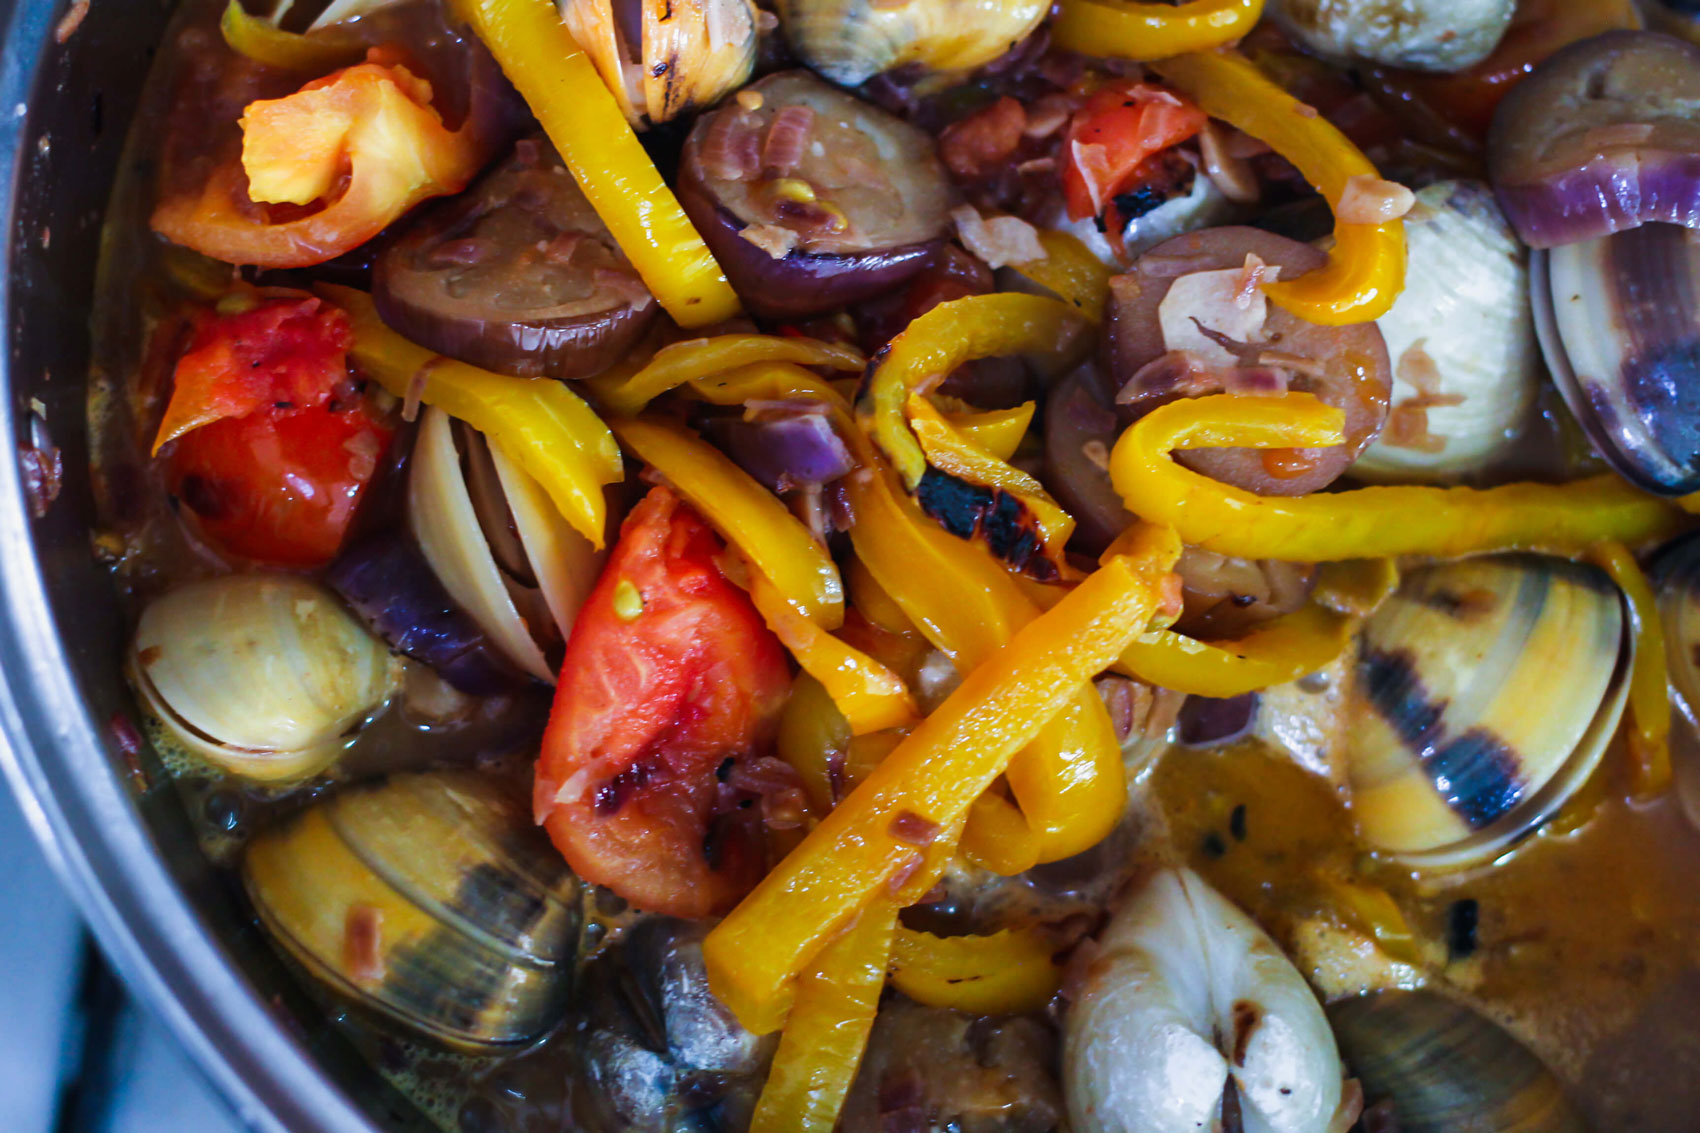 Clams, sliced peppers, eggplant and other ingredients boiling in a pot.